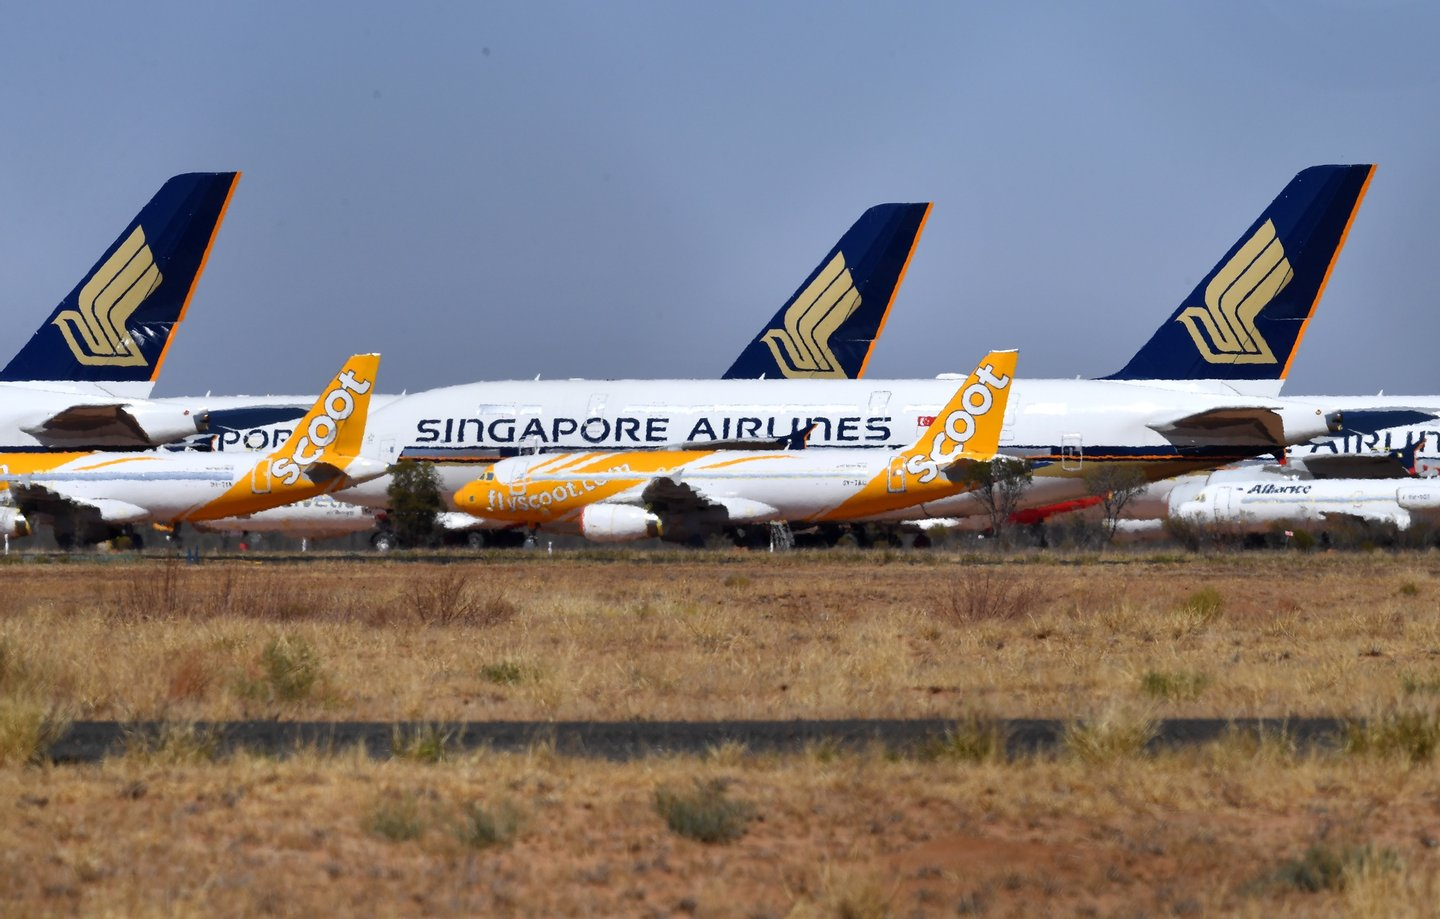 epa08634977 Airbus A320 airplanes of Singapore low-cost carrier Scoot Tigerair (front) and Airbus A380 aircrafts of Singapore Airlines, grounded due to the Coronavirus (COVID-19) pandemic, are parked at the Asia Pacific Aircraft Storage facility in Alice Springs, Australia, 30 August 2020. Aircrafts including the Airbus A380s and Boeing MAX 8s are being stored at the Alice Springs facility because central Australia's dry climate makes it a suitable place for long-term aircraft storage. EPA/DARREN ENGLAND AUSTRALIA AND NEW ZEALAND OUT